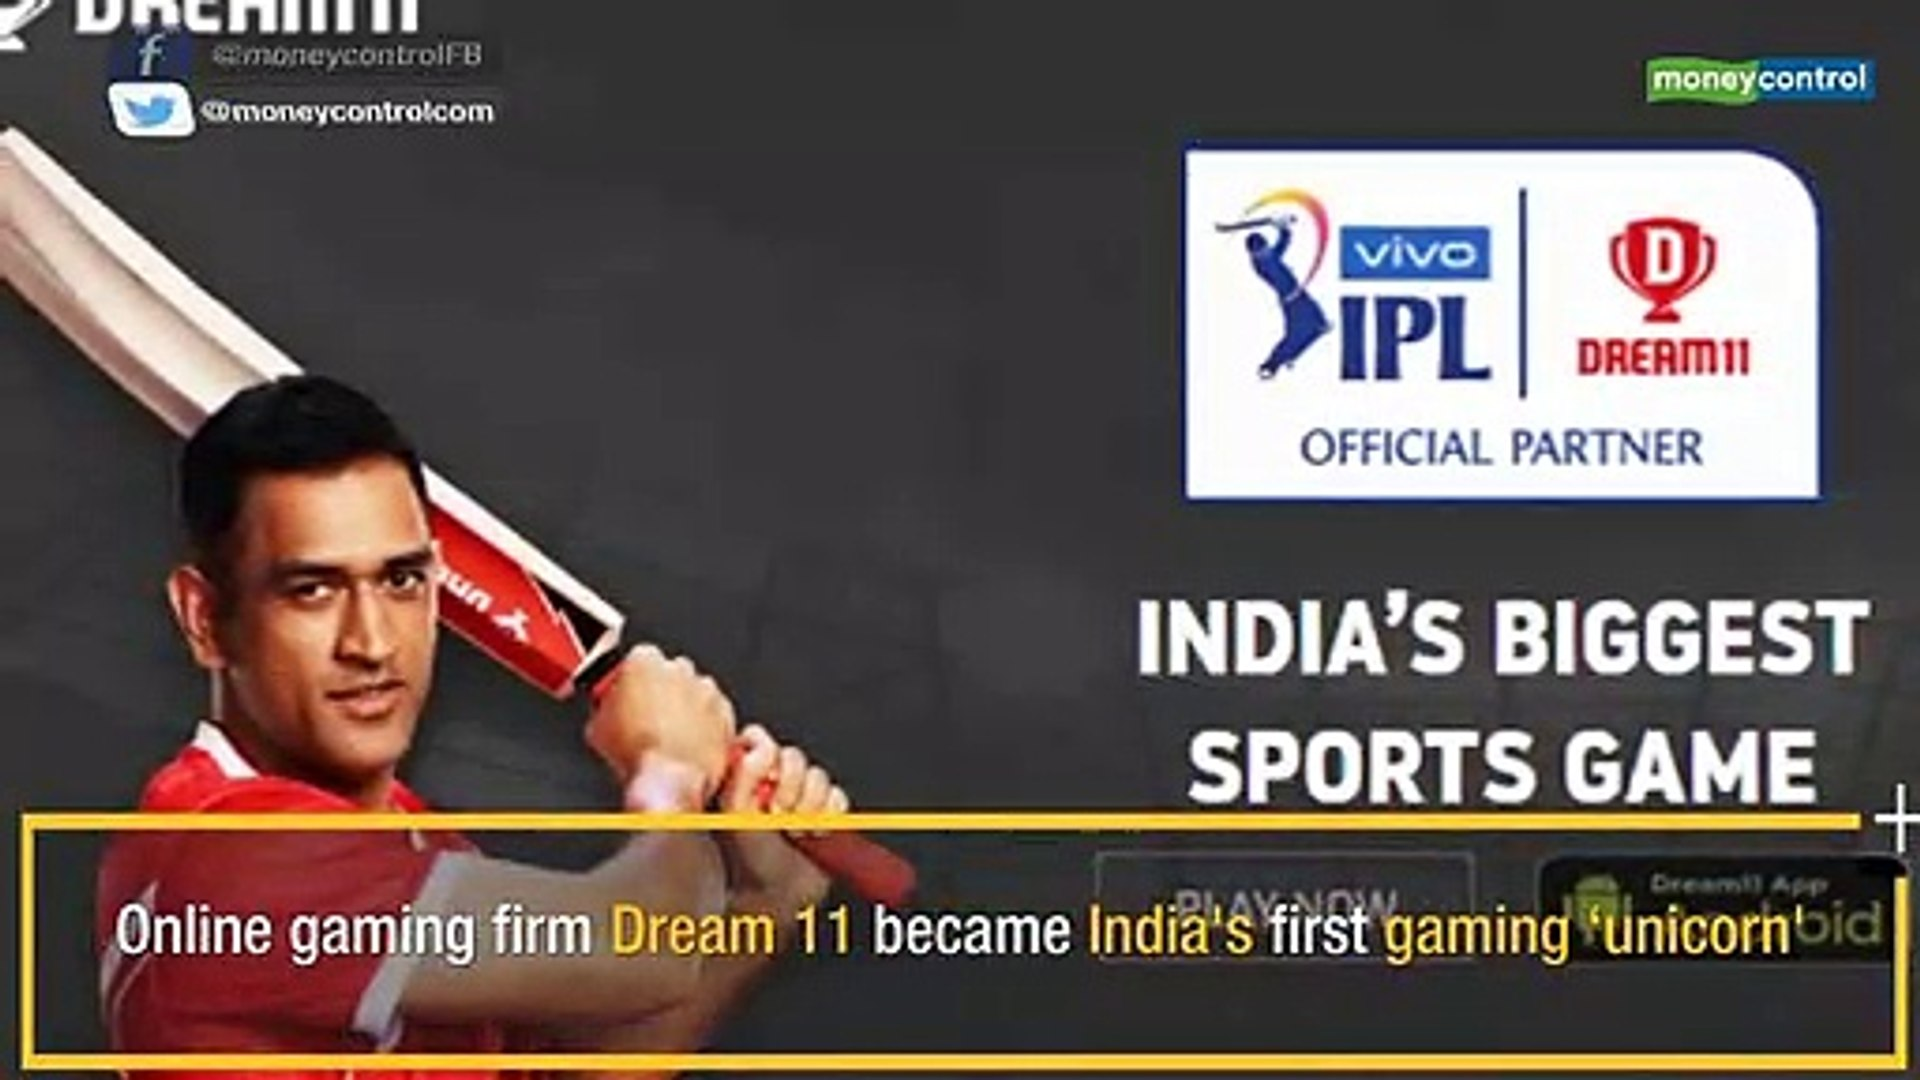 Dream11 is India's first gaming 'unicorn': How the fantasy gaming platform made it to